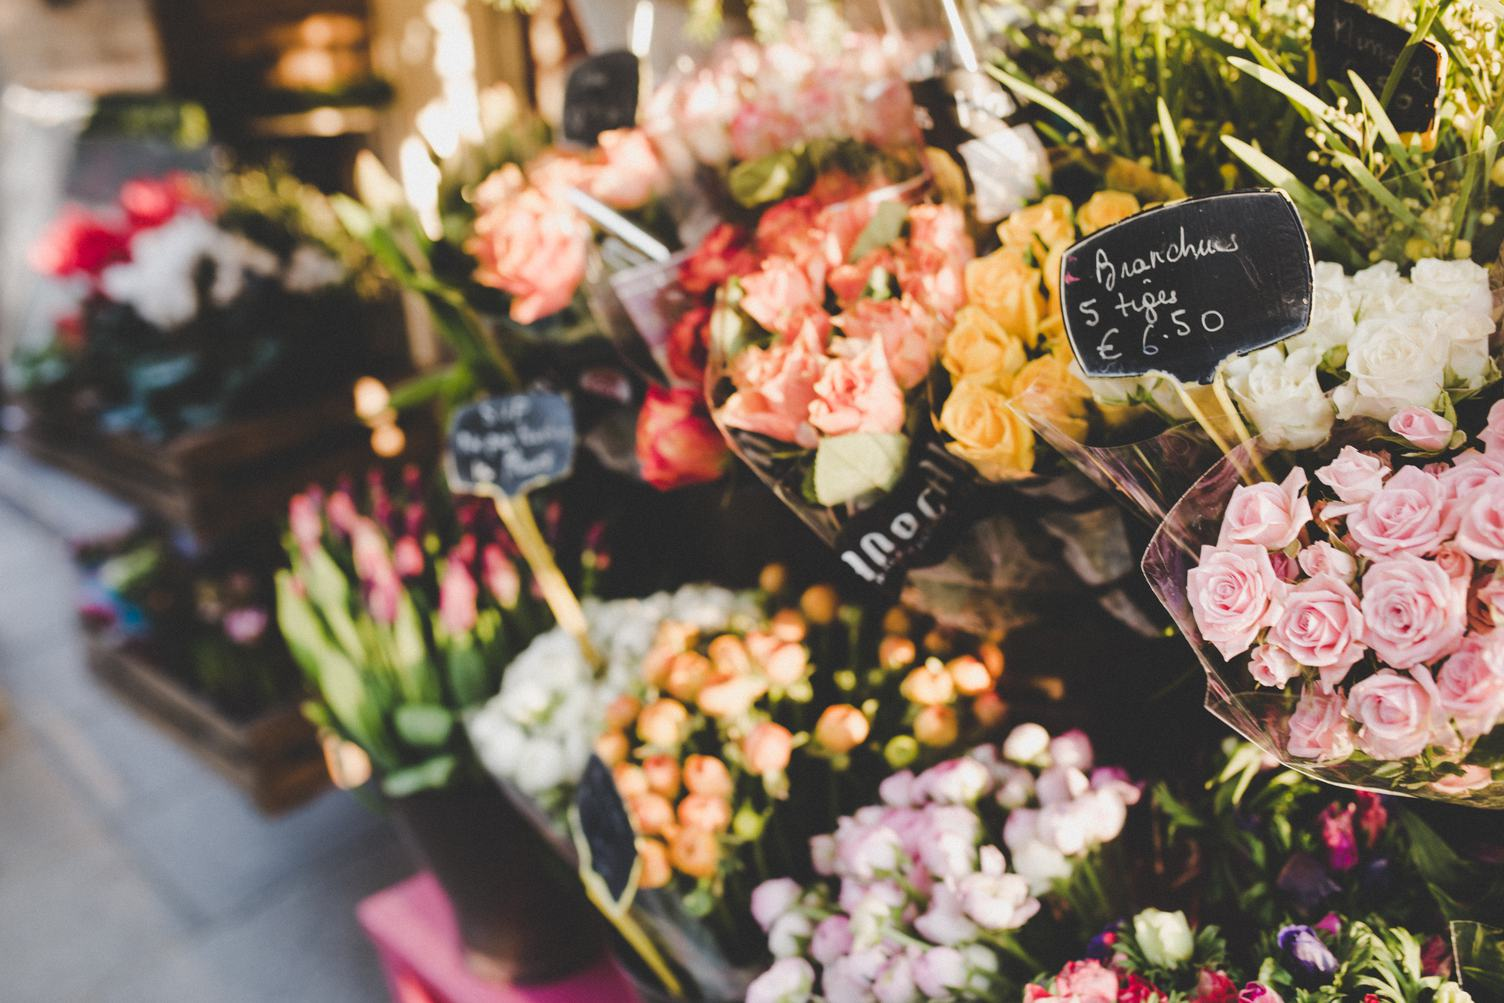 Exterior Florist's Stall with Colorful Flowers